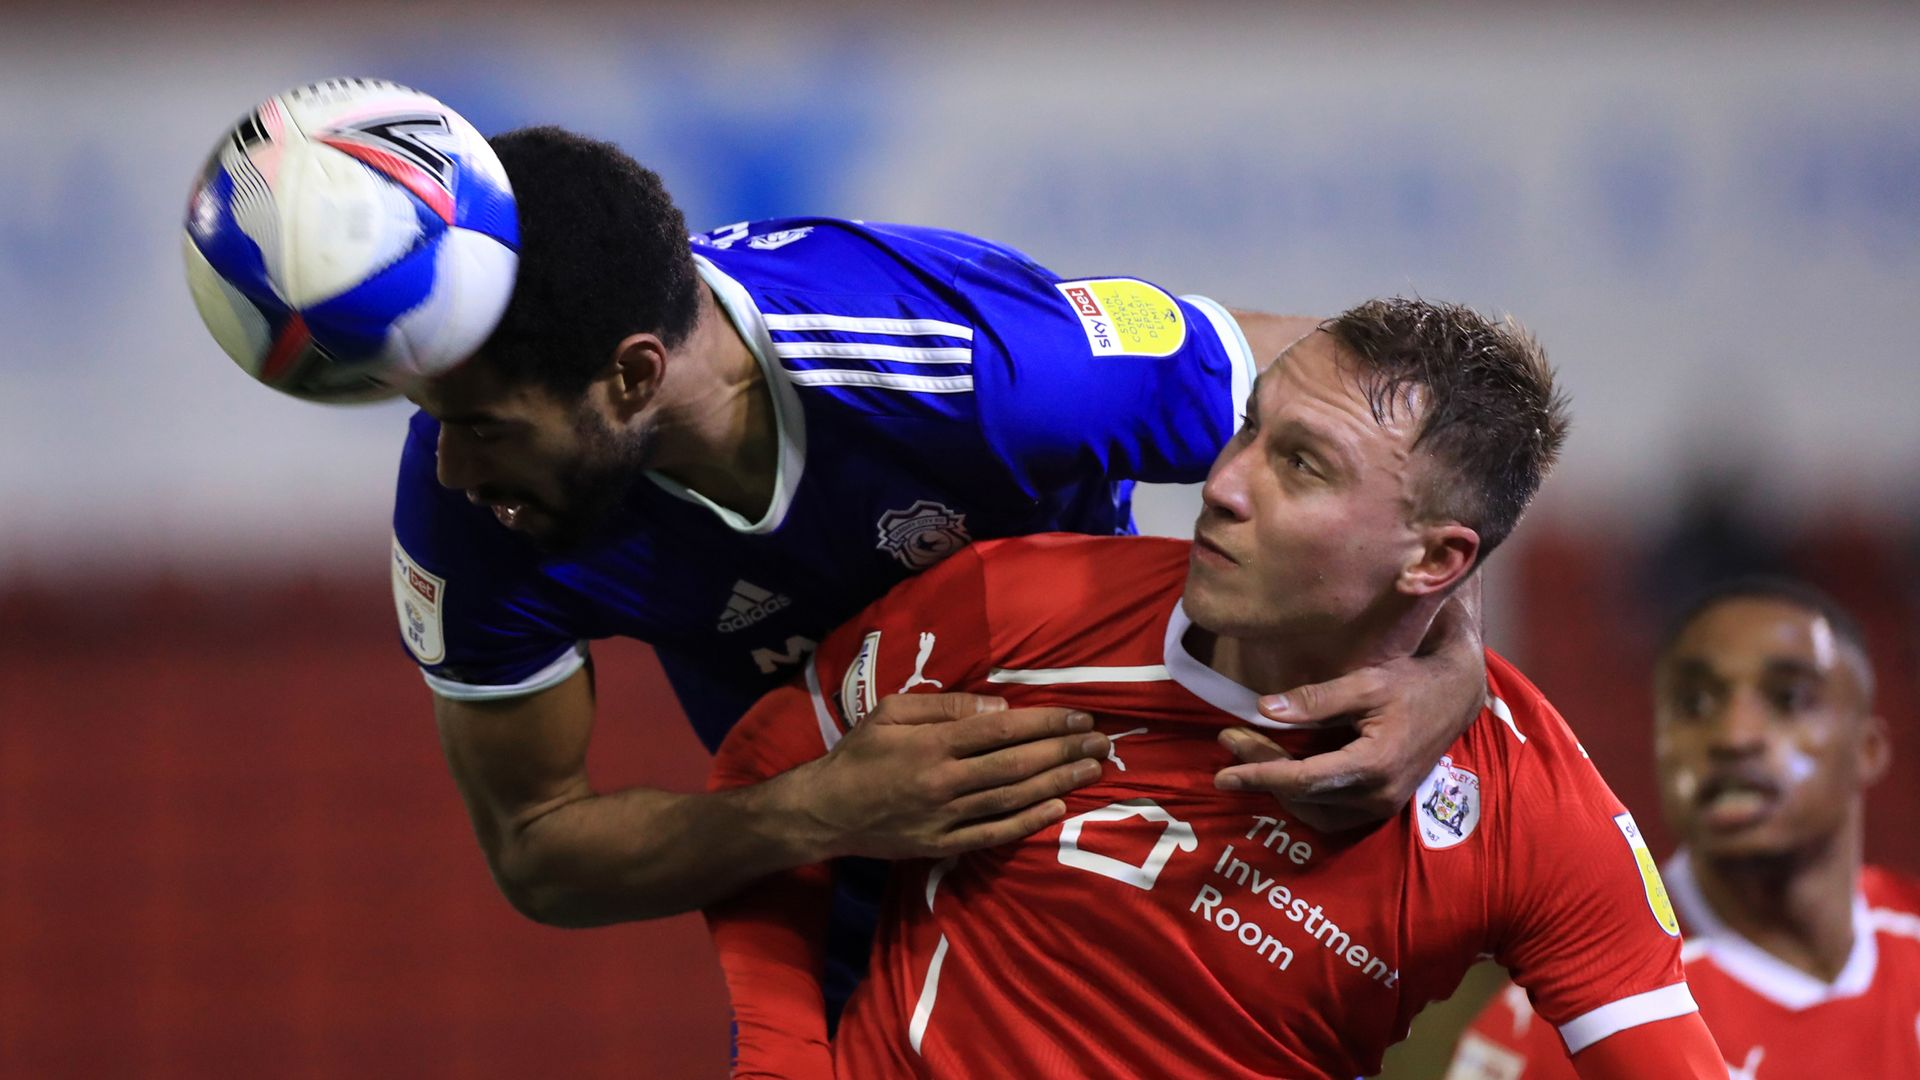 Cardiff battle back for draw in McCarthy's first game